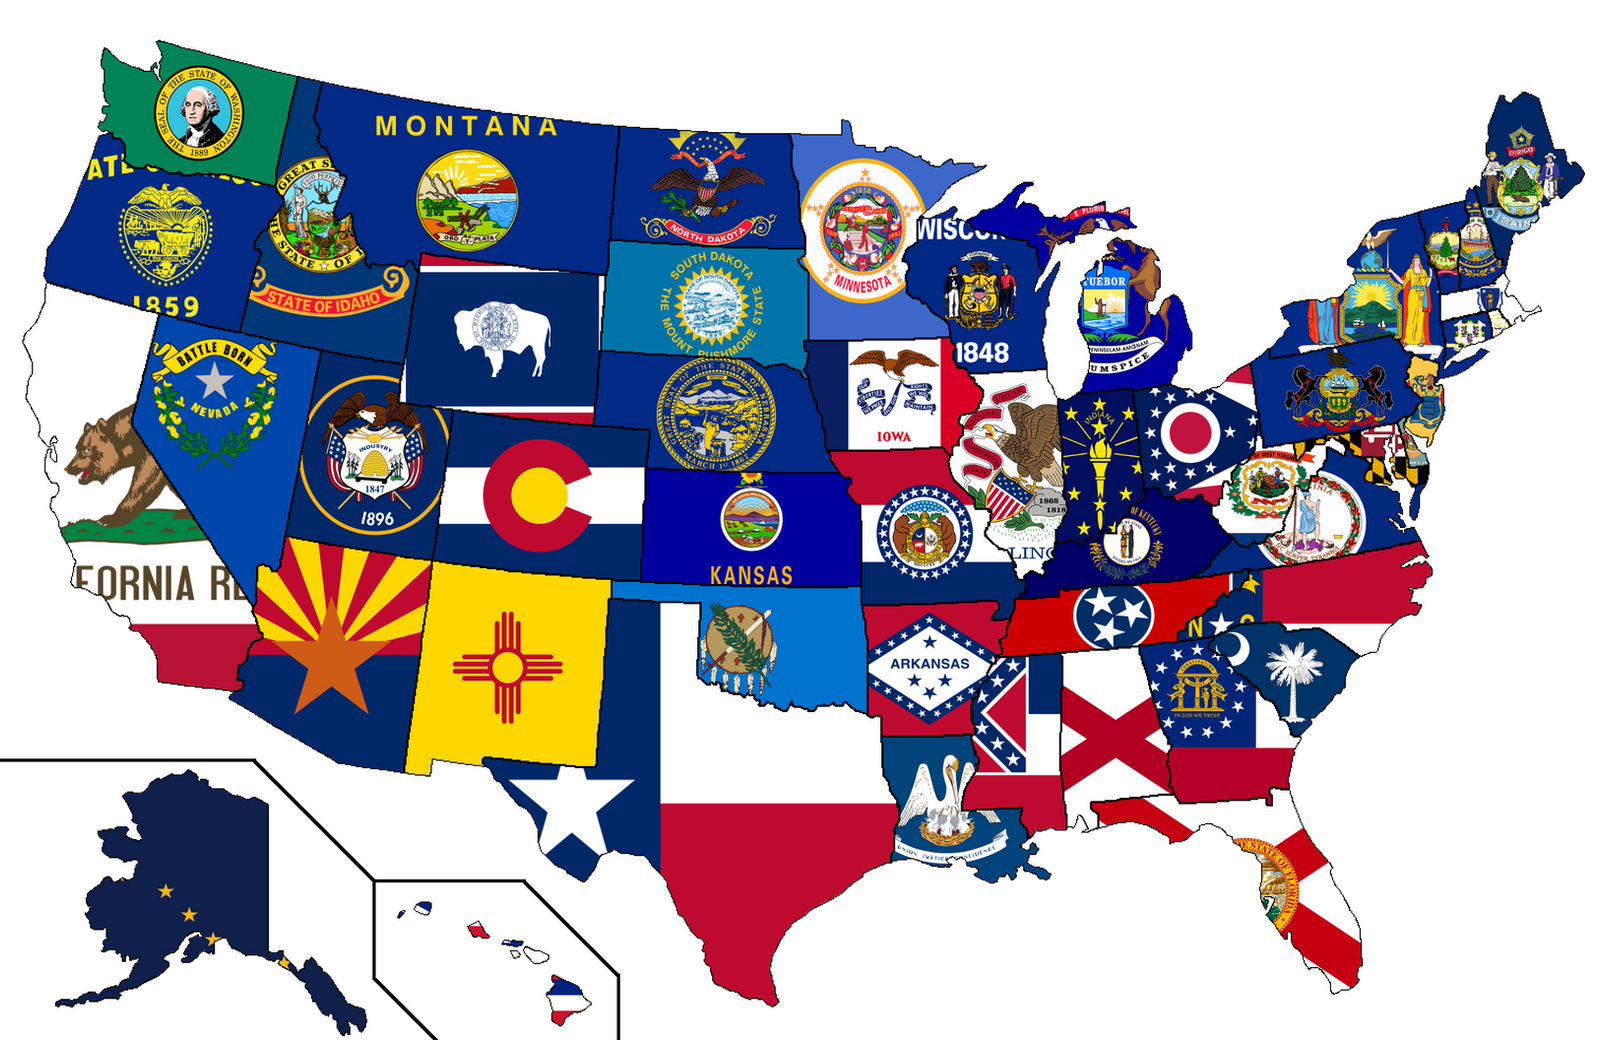 United States Flag Map By HeerSander On DeviantArt - United states map iowa